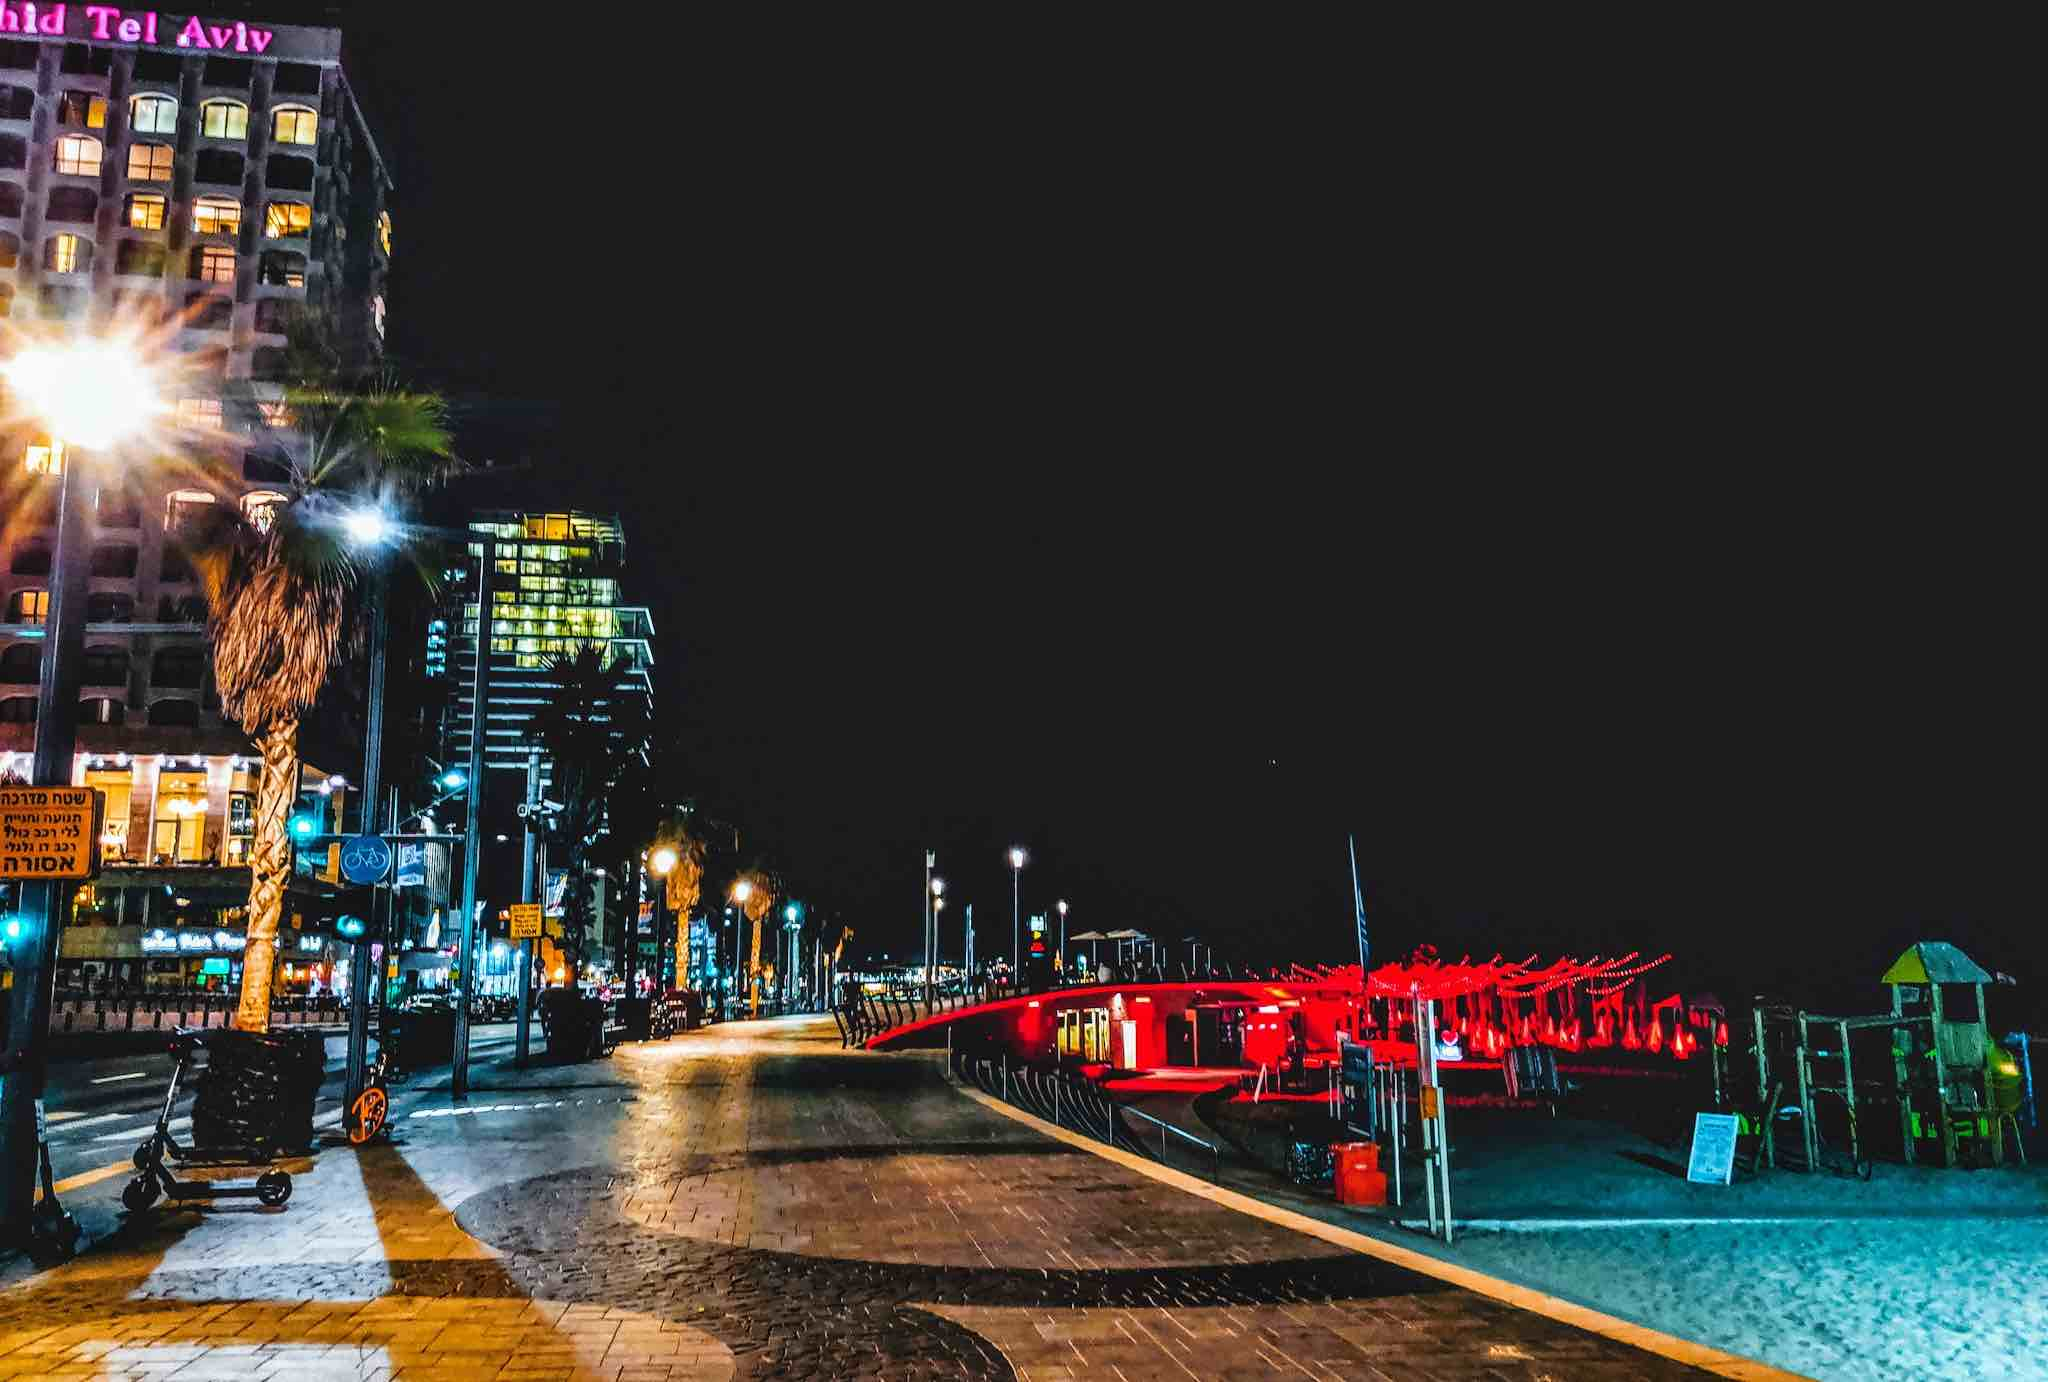 Tel Aviv By Night: How I Fell In Love With The City In 12 Hours... - God Save The Points